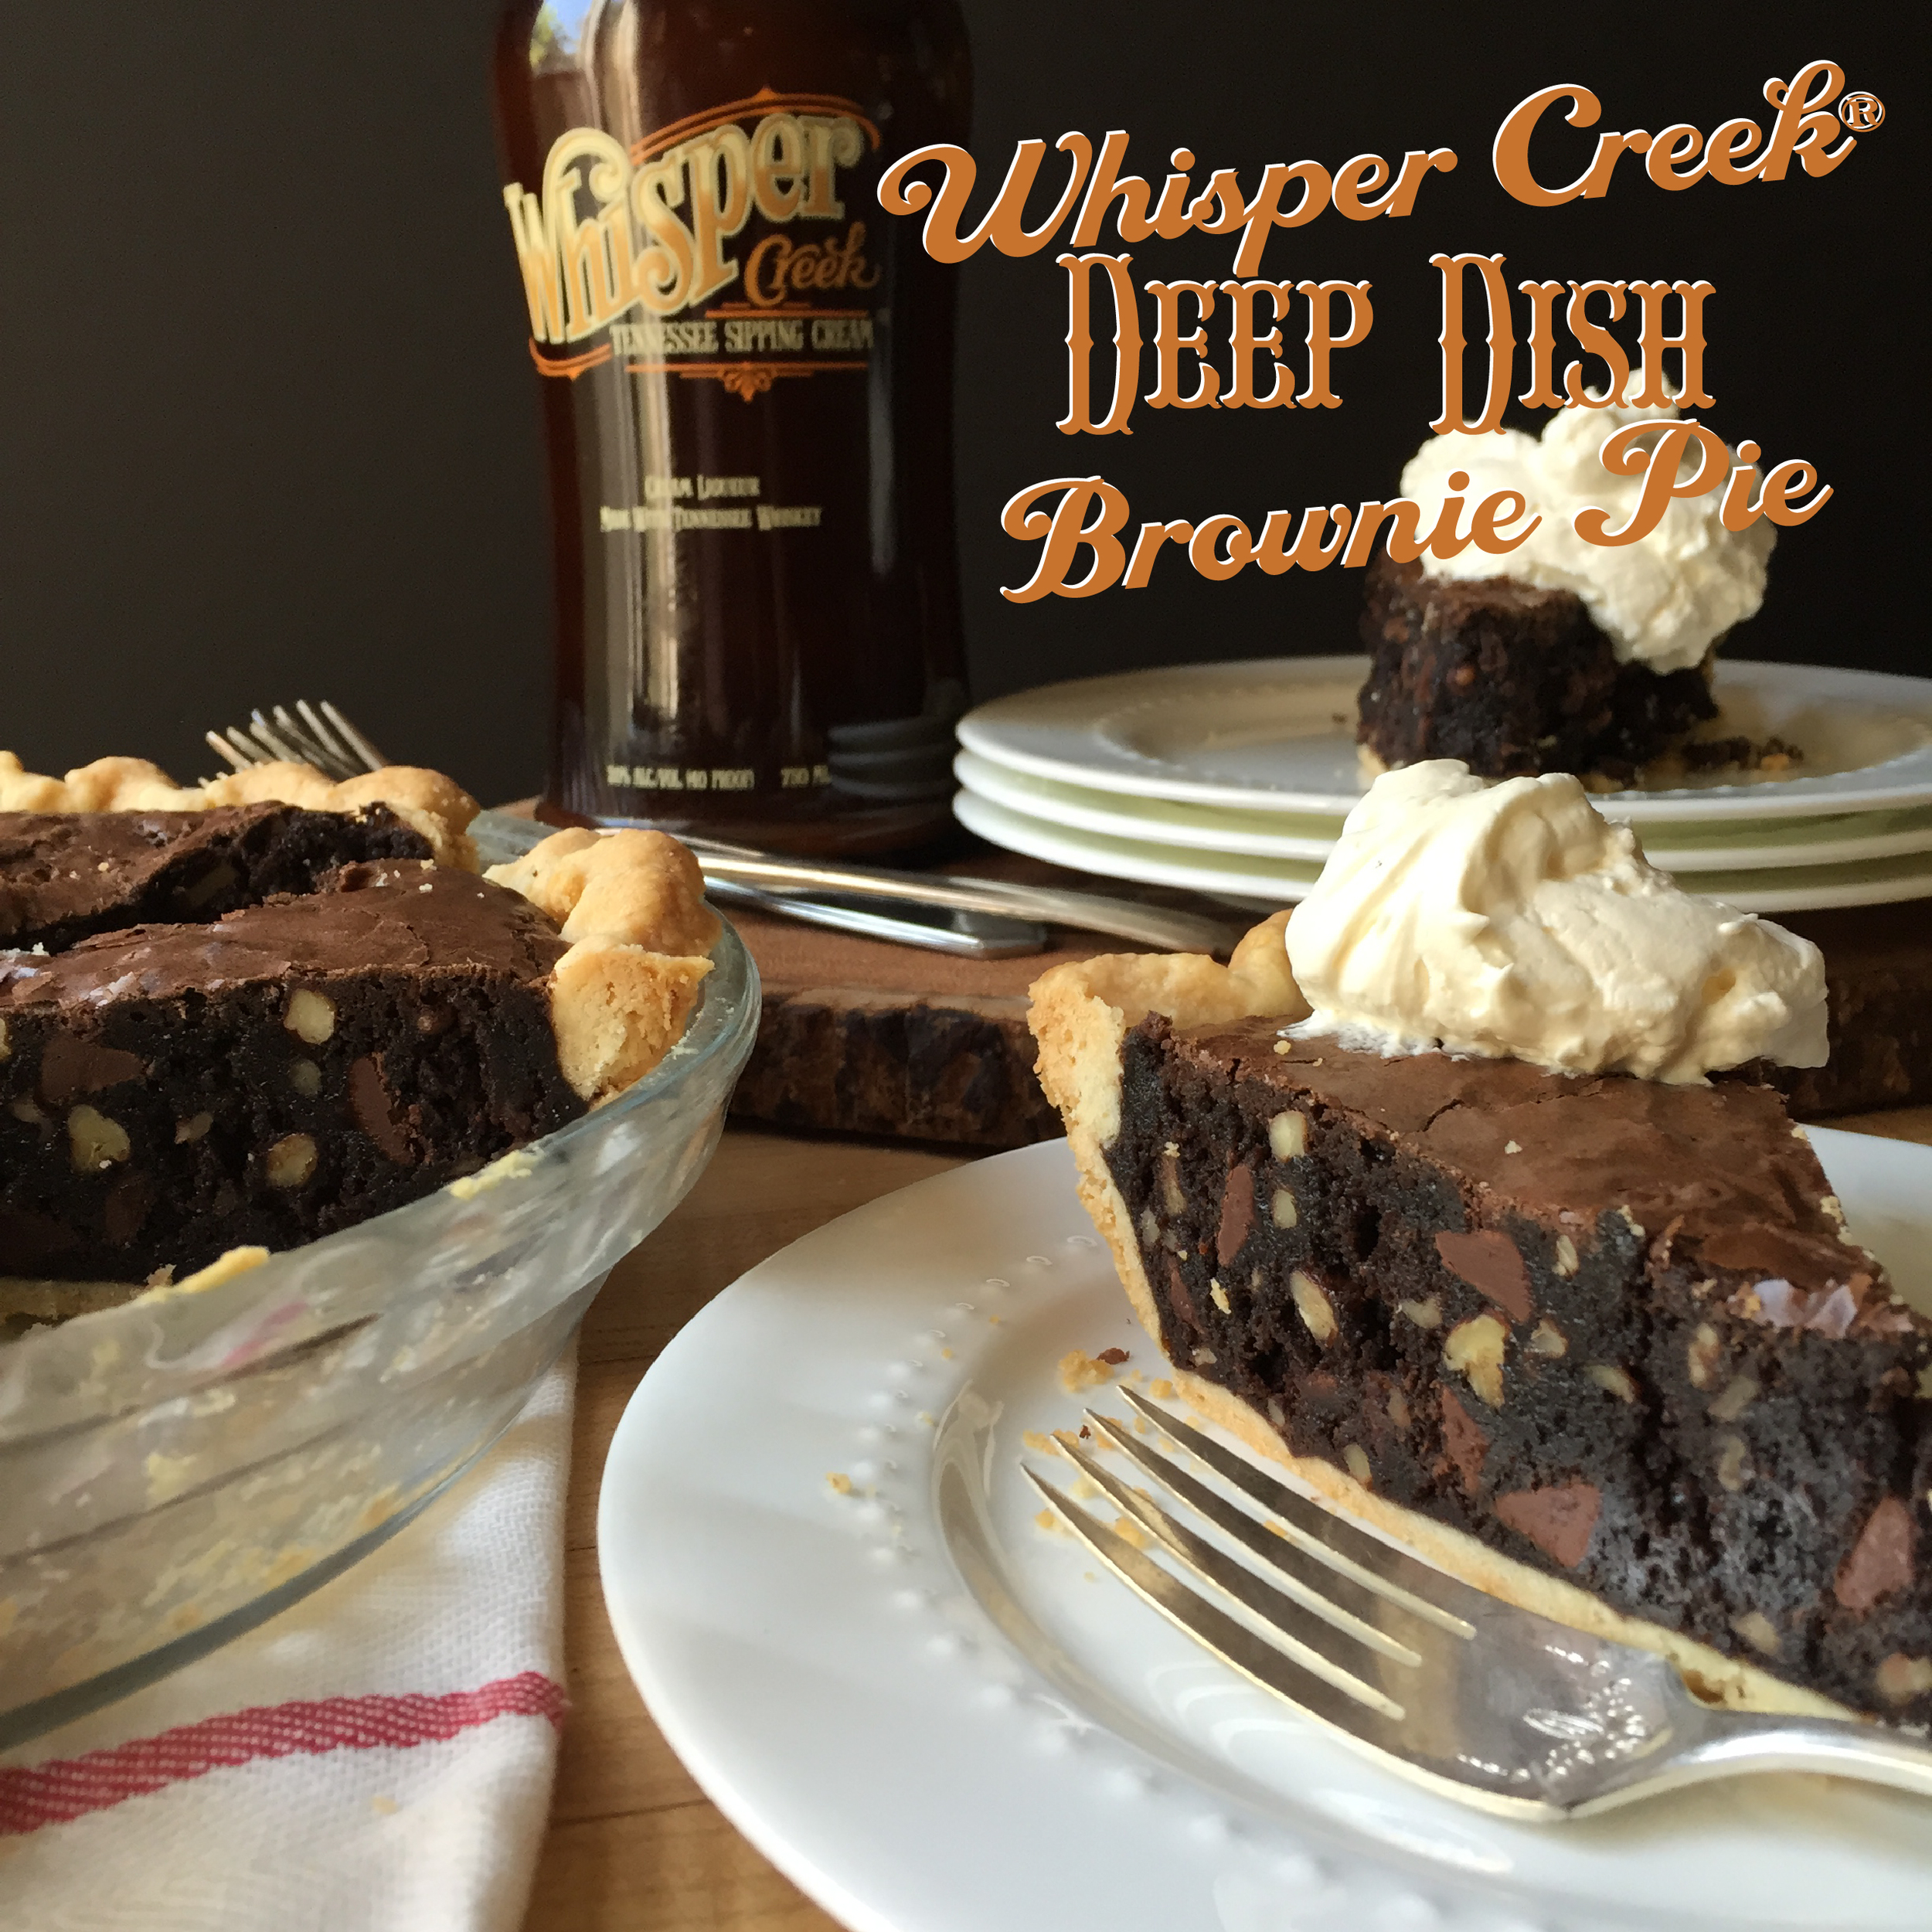 Whisper Creek Deep Dish Brownie Pie - Decadent and Delicious!!